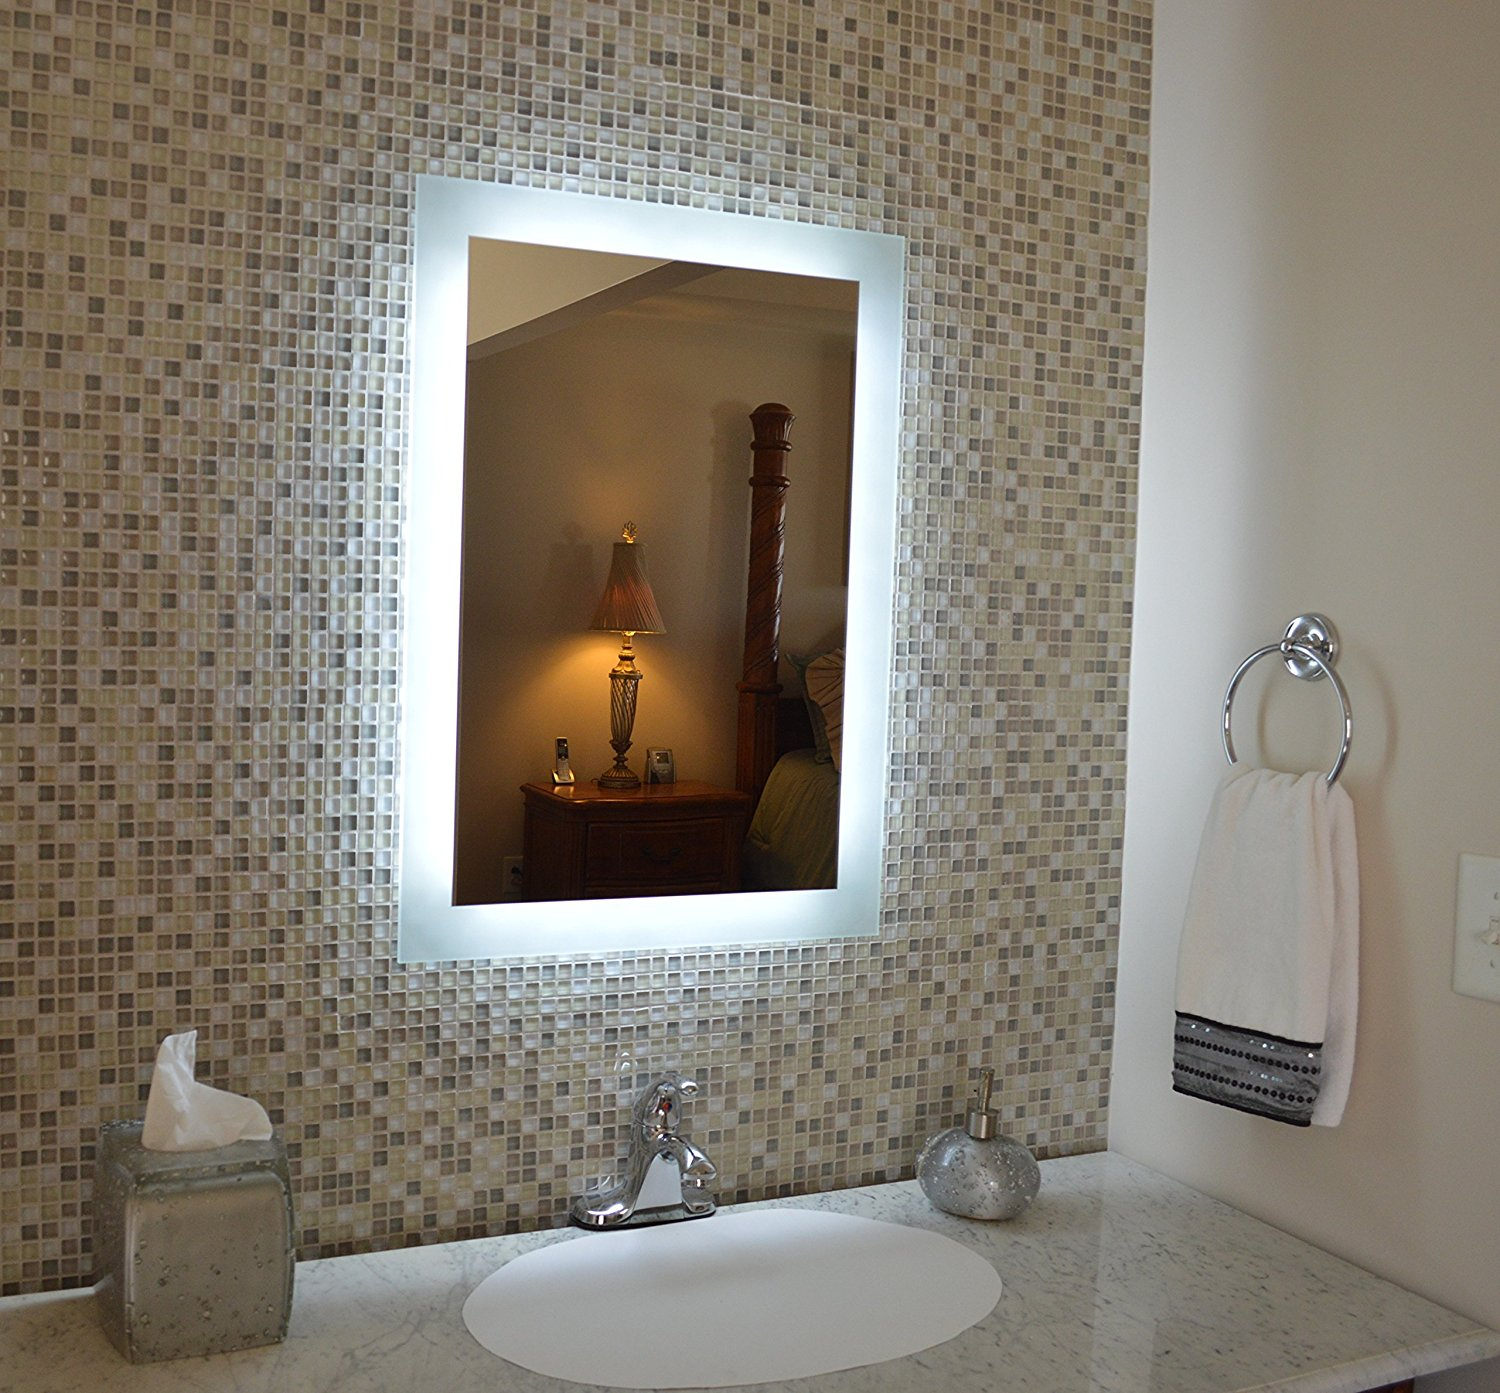 5mm Silver Coating Bathroom Led Mirrors Best S With Frosted Area